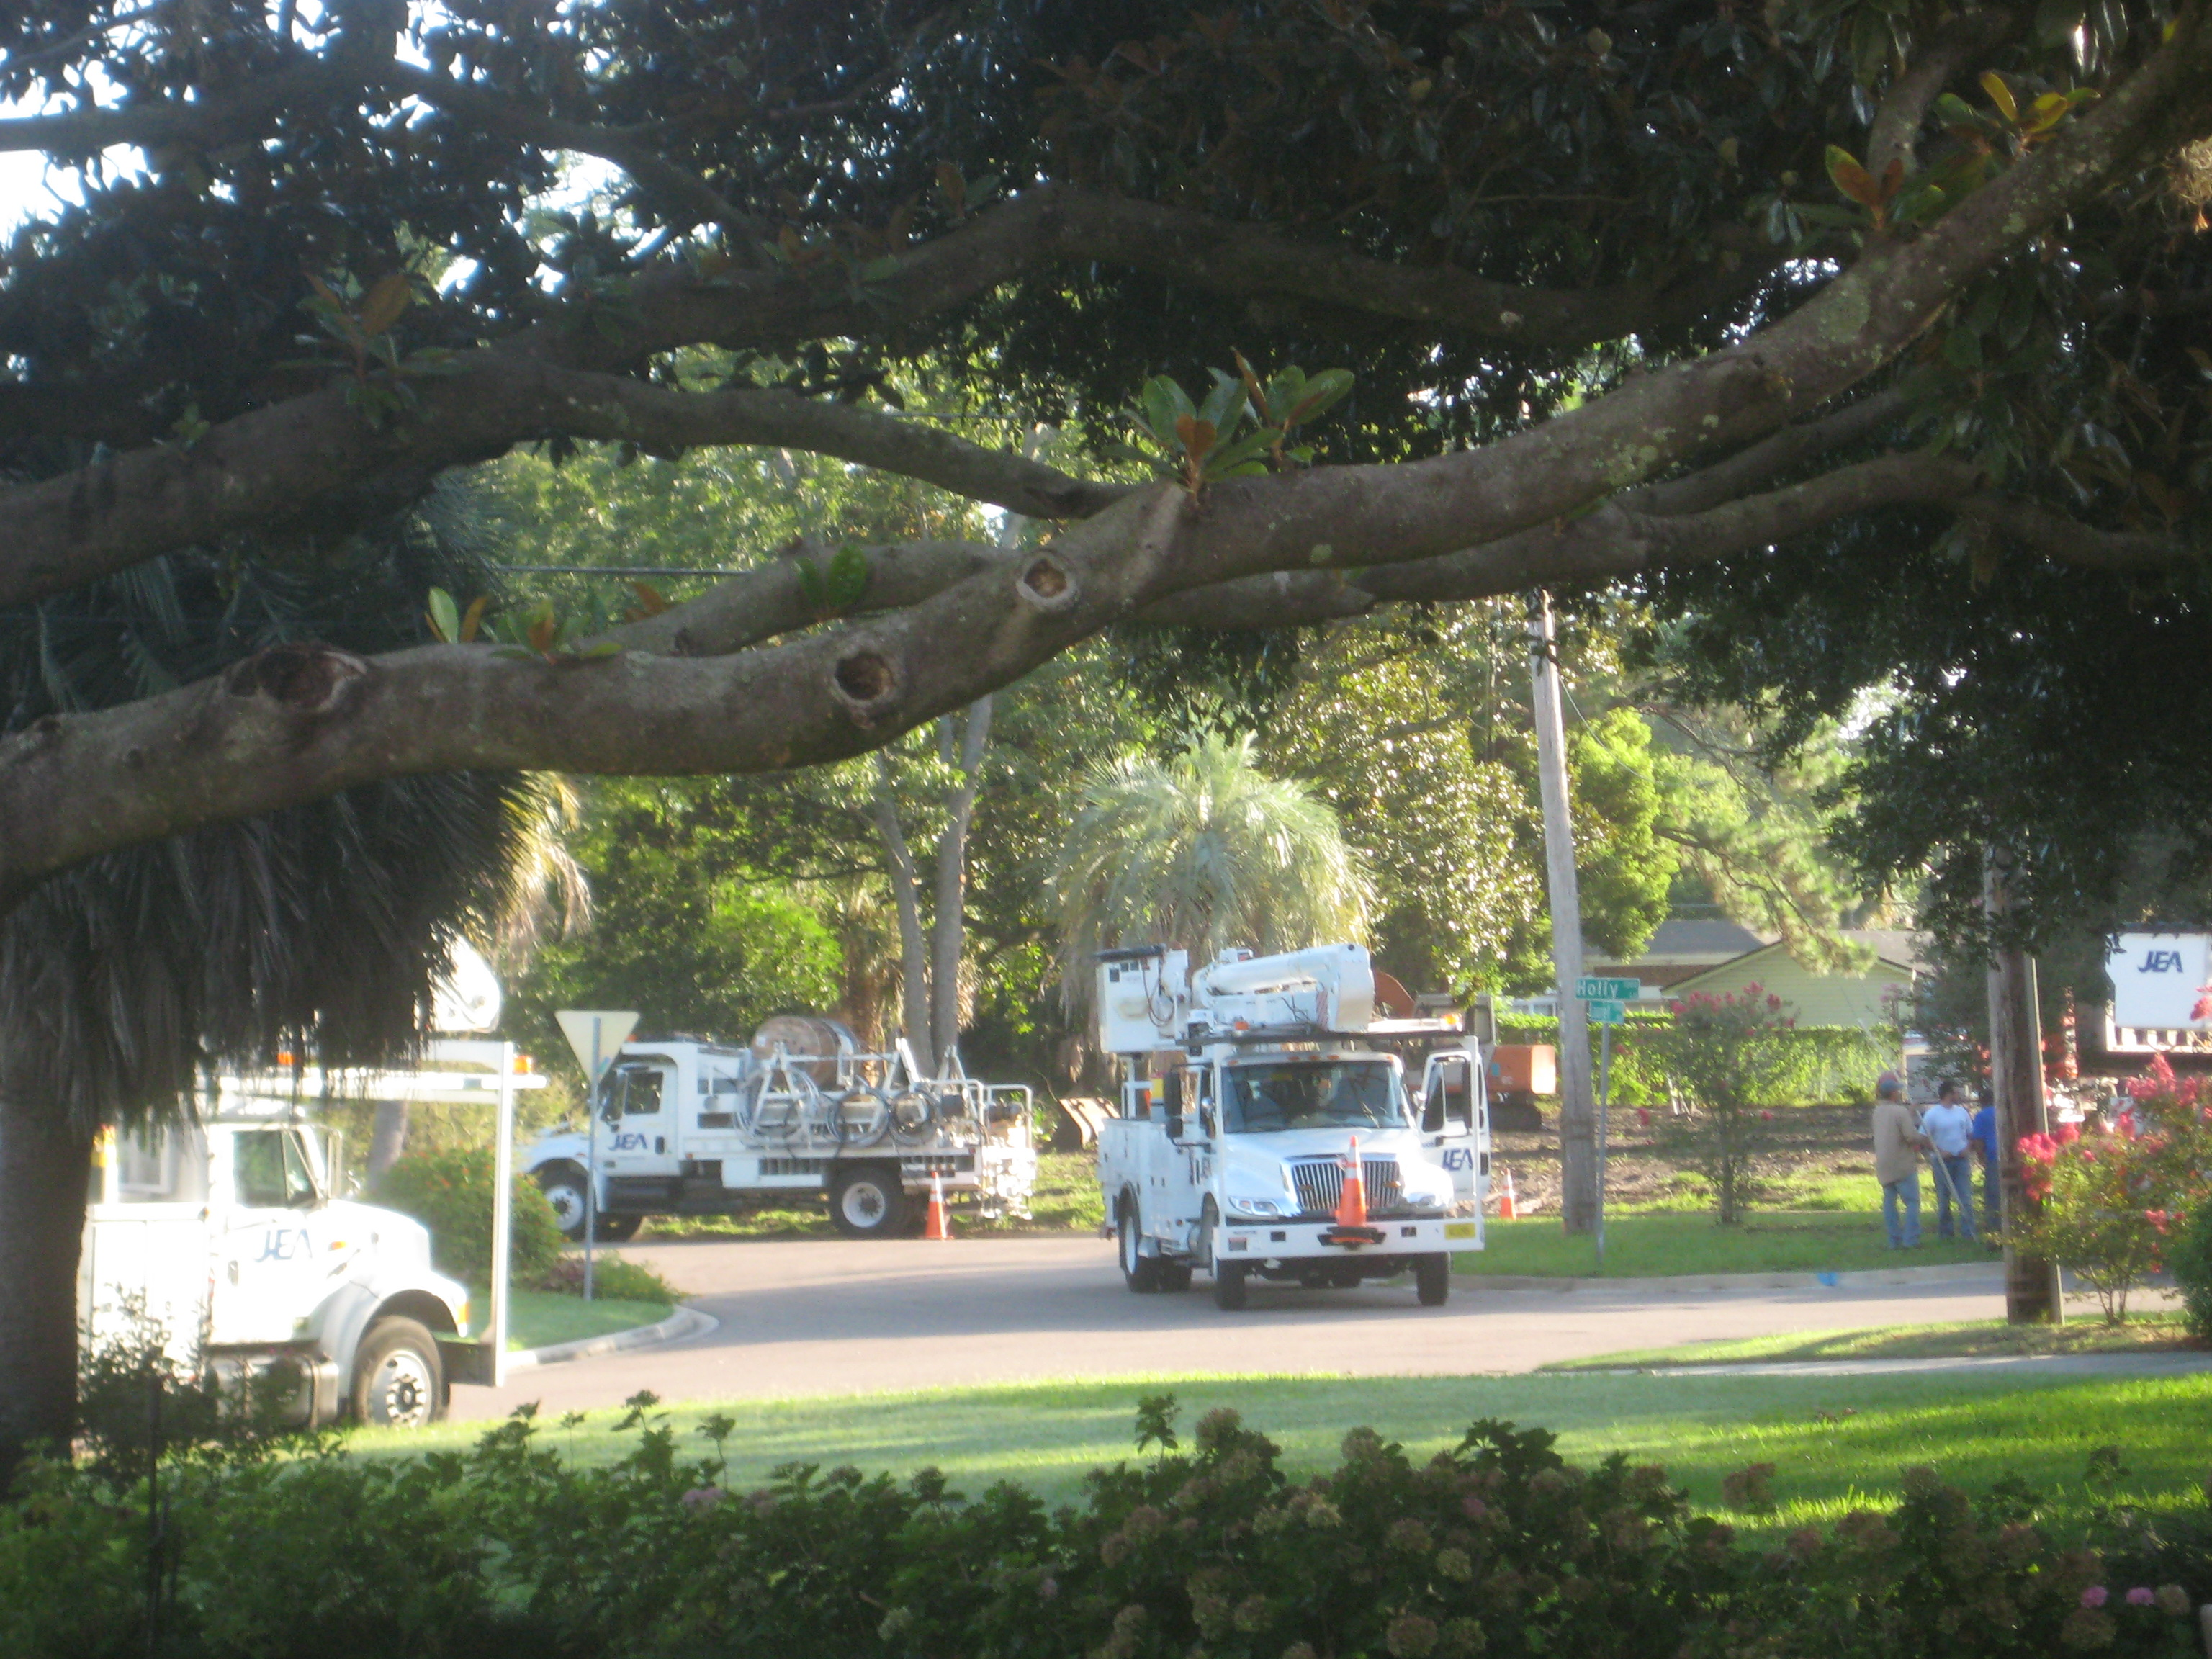 JEA is replacing poles in the neighborhood. They regularly monitor poles around town and replace them as needed. They will be in the area for the next few weeks. Each […]